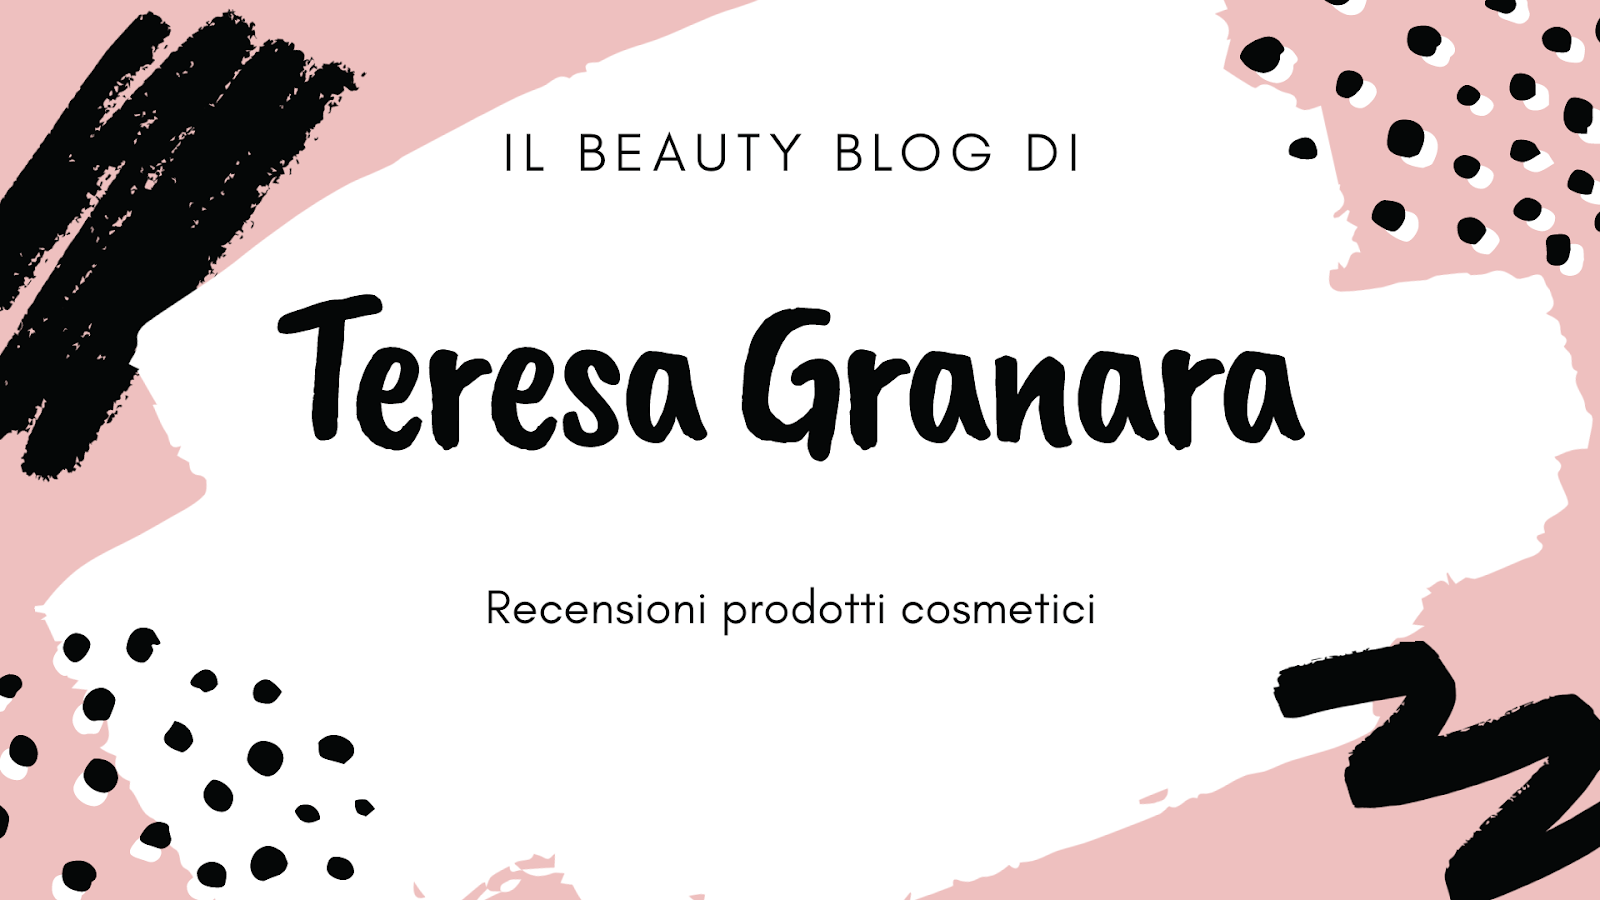 Il Beauty Blog di Teresa